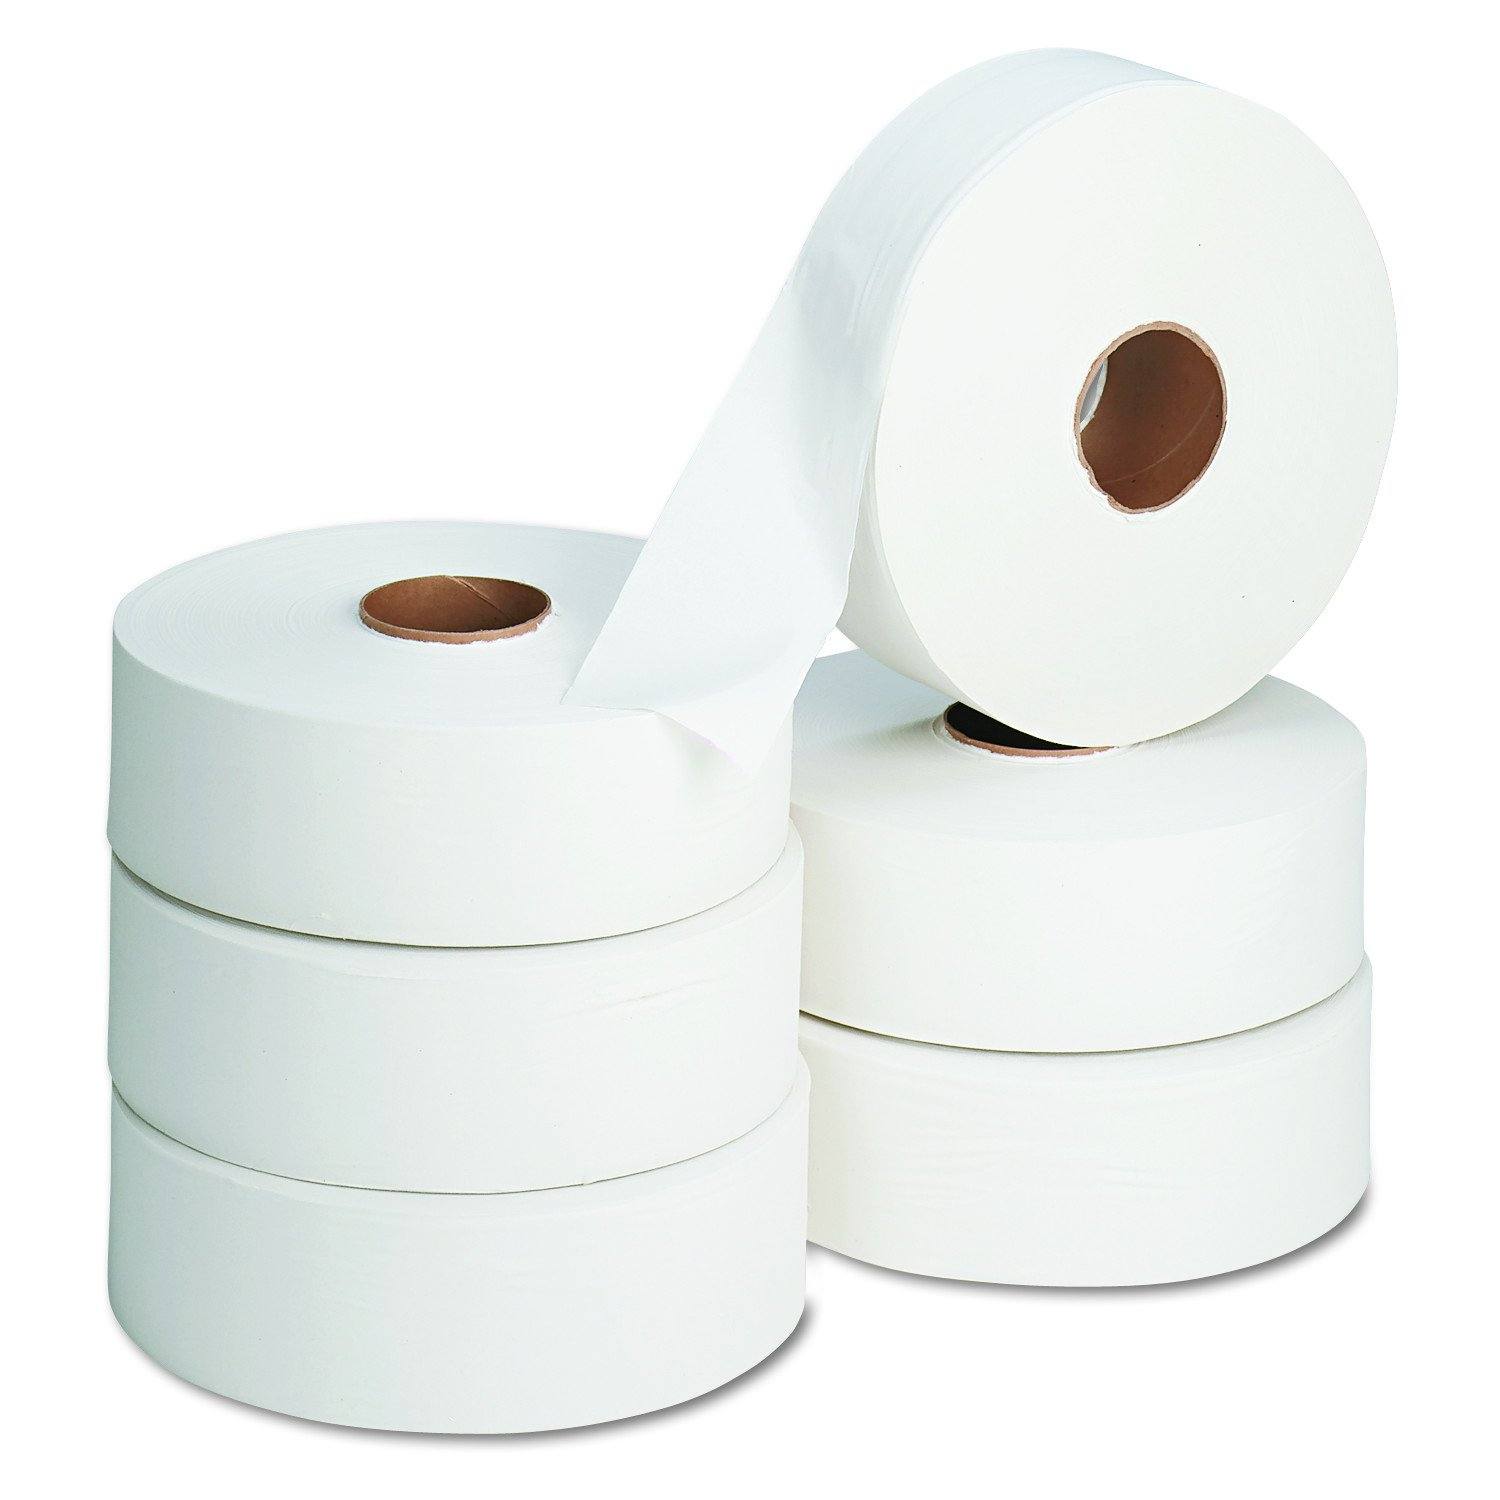 Acclaim 1-Ply Jumbo Jr. Toilet Paper by GP PRO (Georgia-Pacific